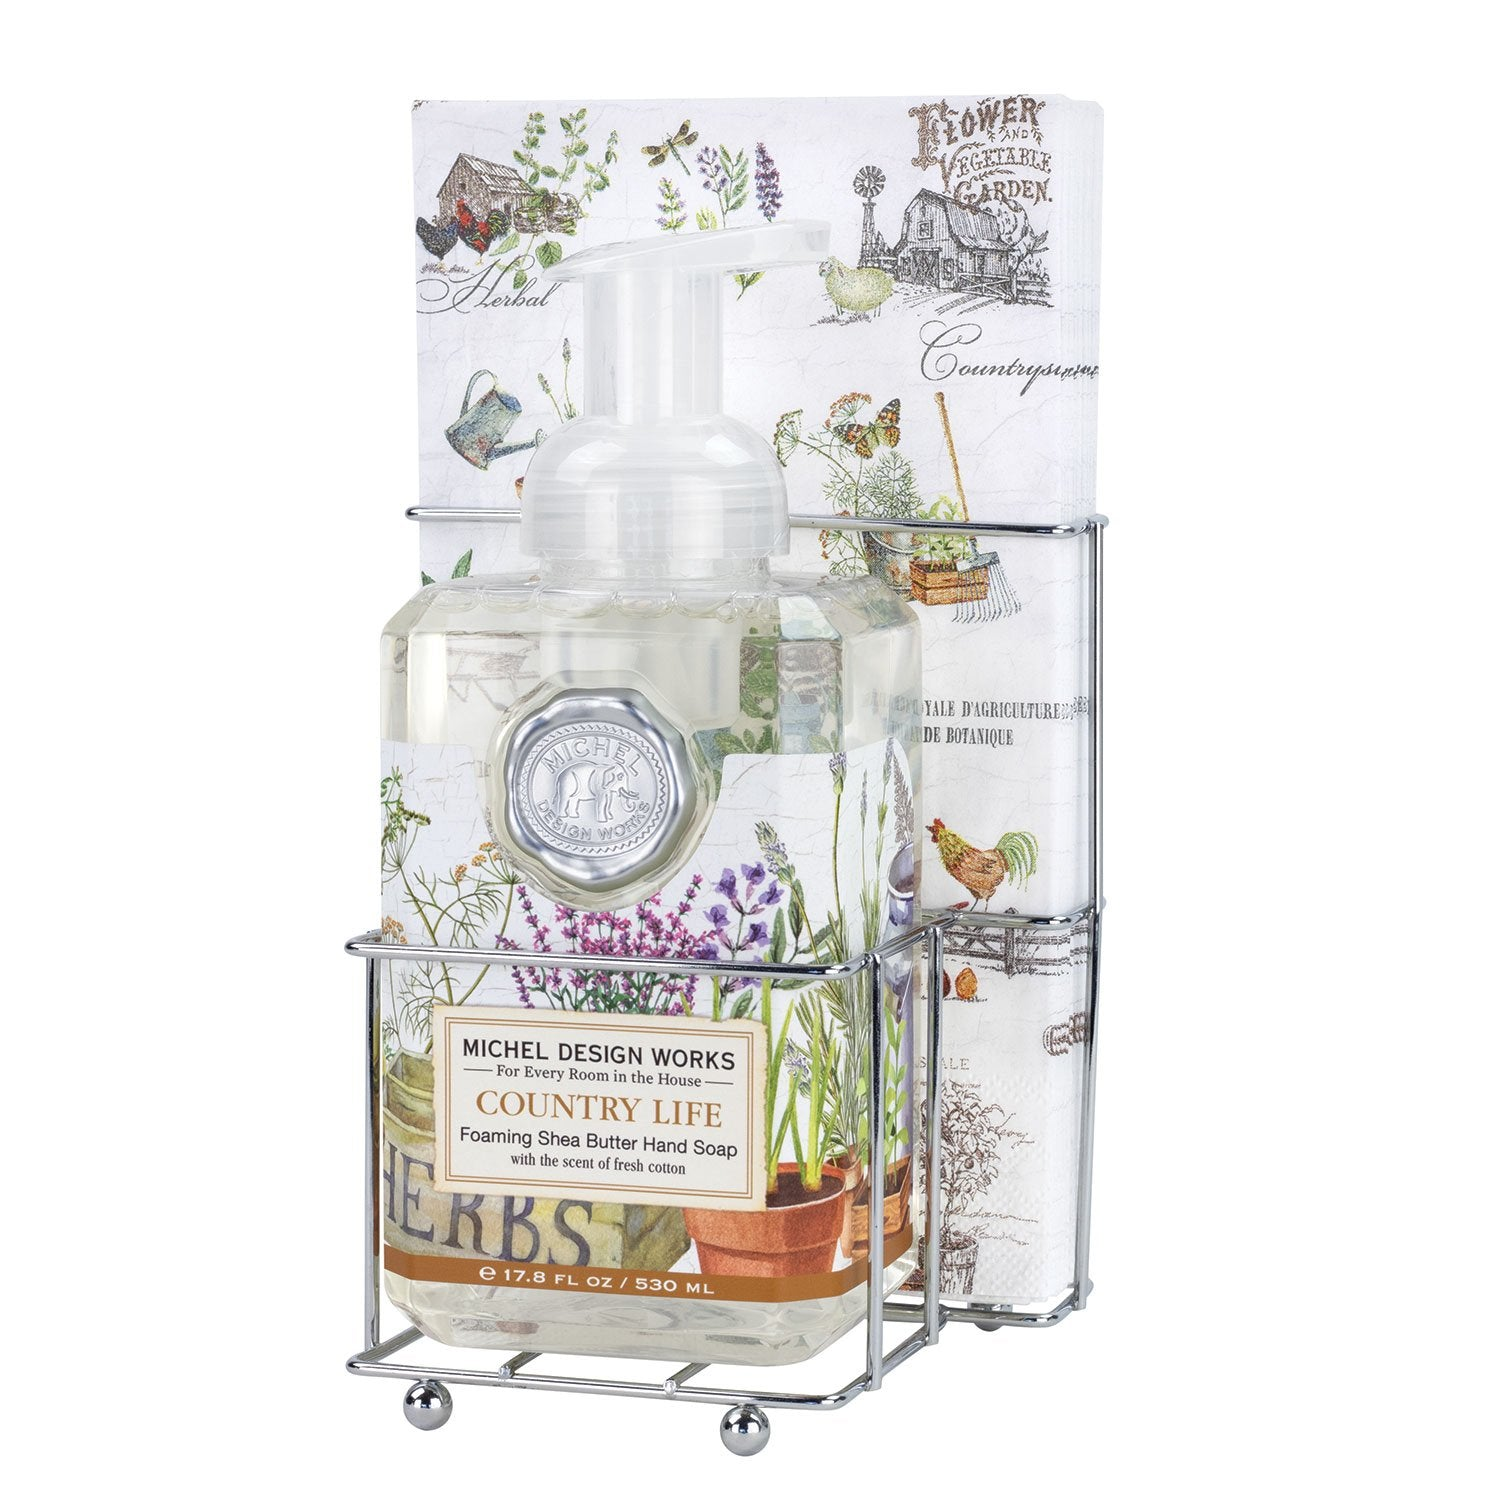 Country Life Foaming Hand Soap Napkin Set